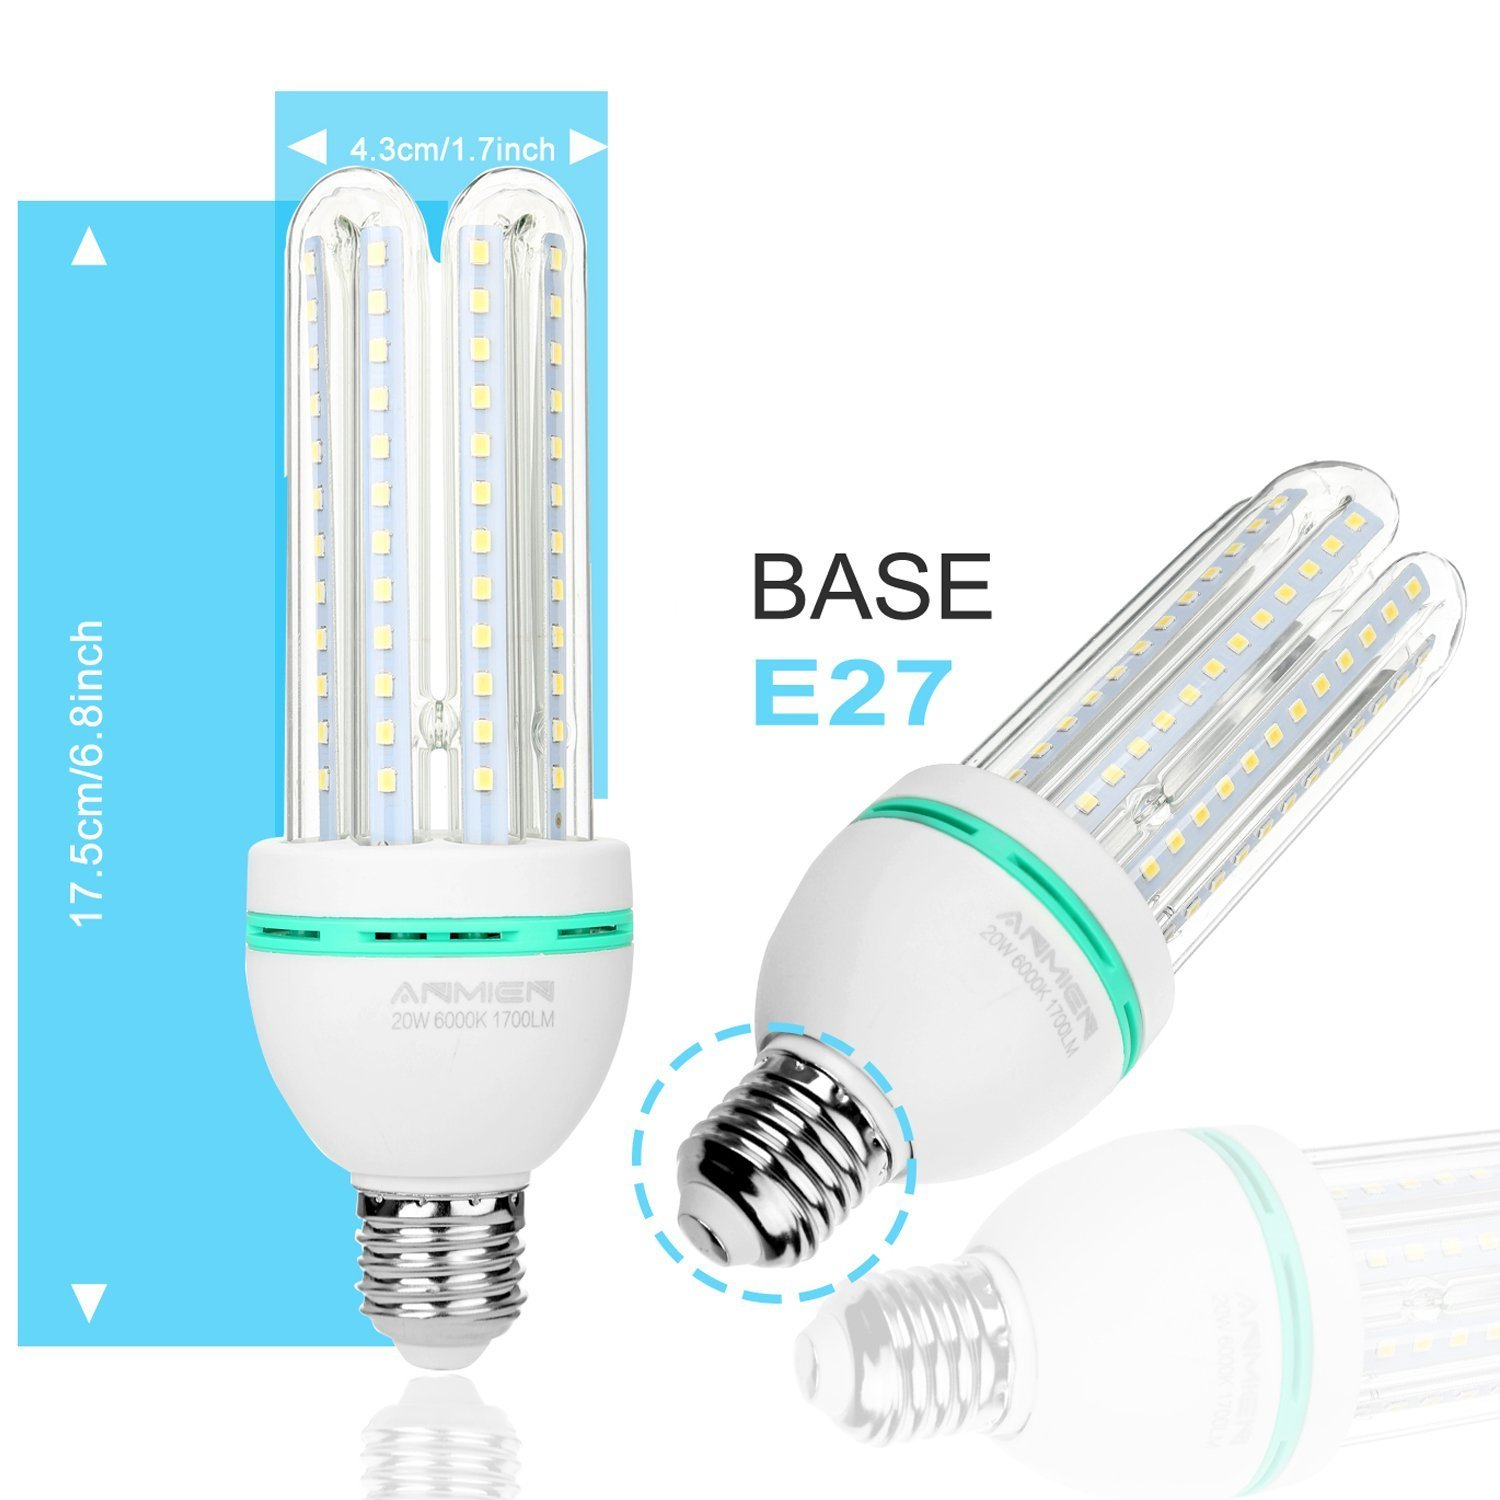 Light Bombillas LED E27 16 W(Equivale de 120 Vatios), Blanco Frio 6000K Iluminación LED, Ángulo de Haz 360°, LED Lámpara de 1600 Lumen, AC 85~265V - 4 Pack: ...